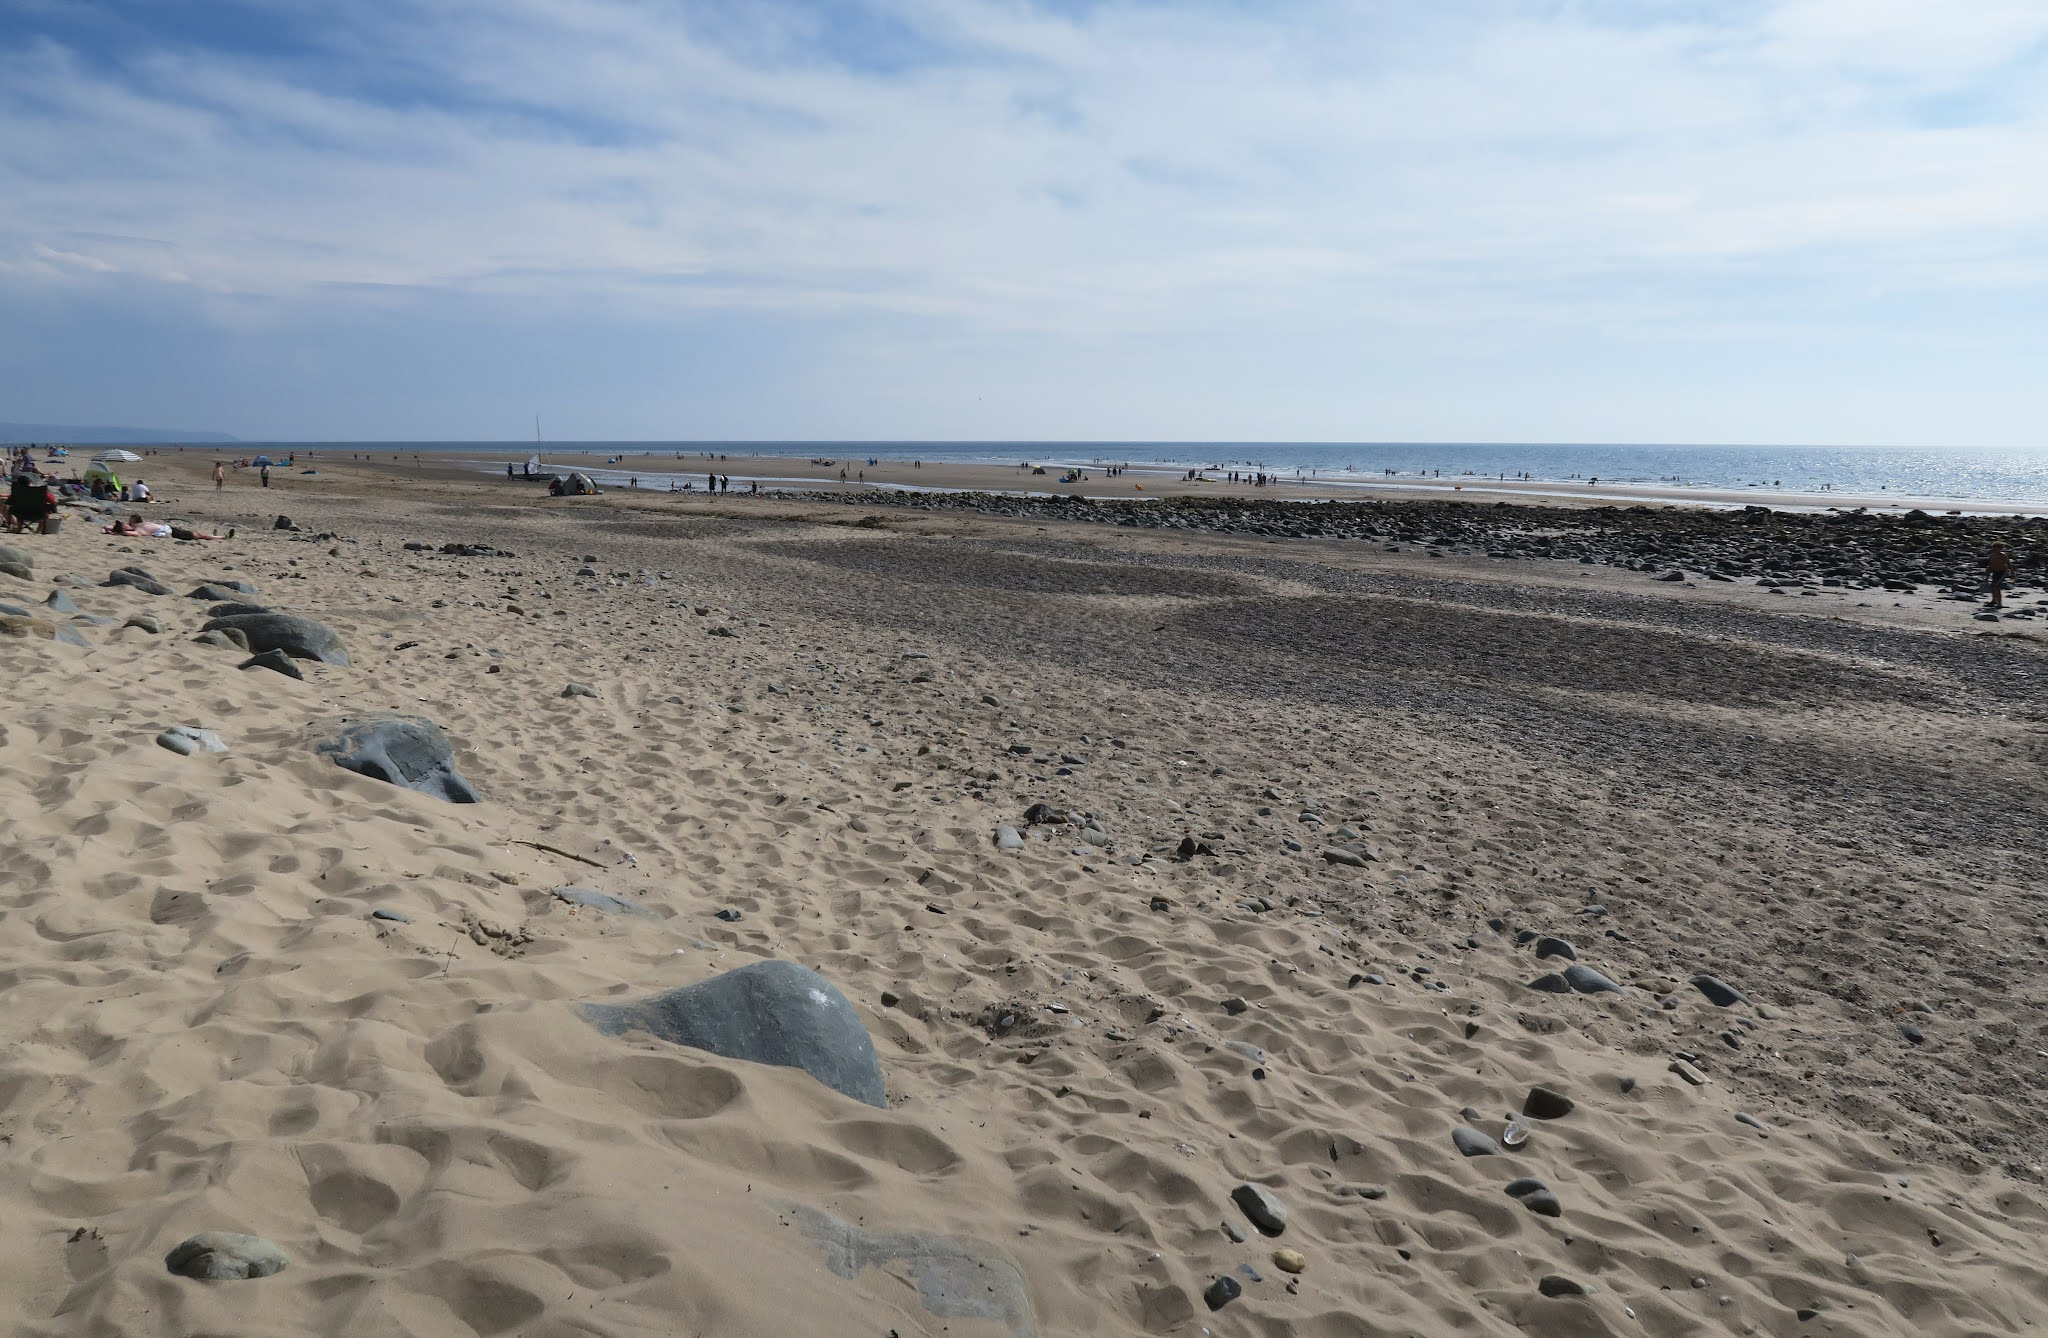 Looking across the beach at Shell Island. The foreground is sandy but the shore is shingle